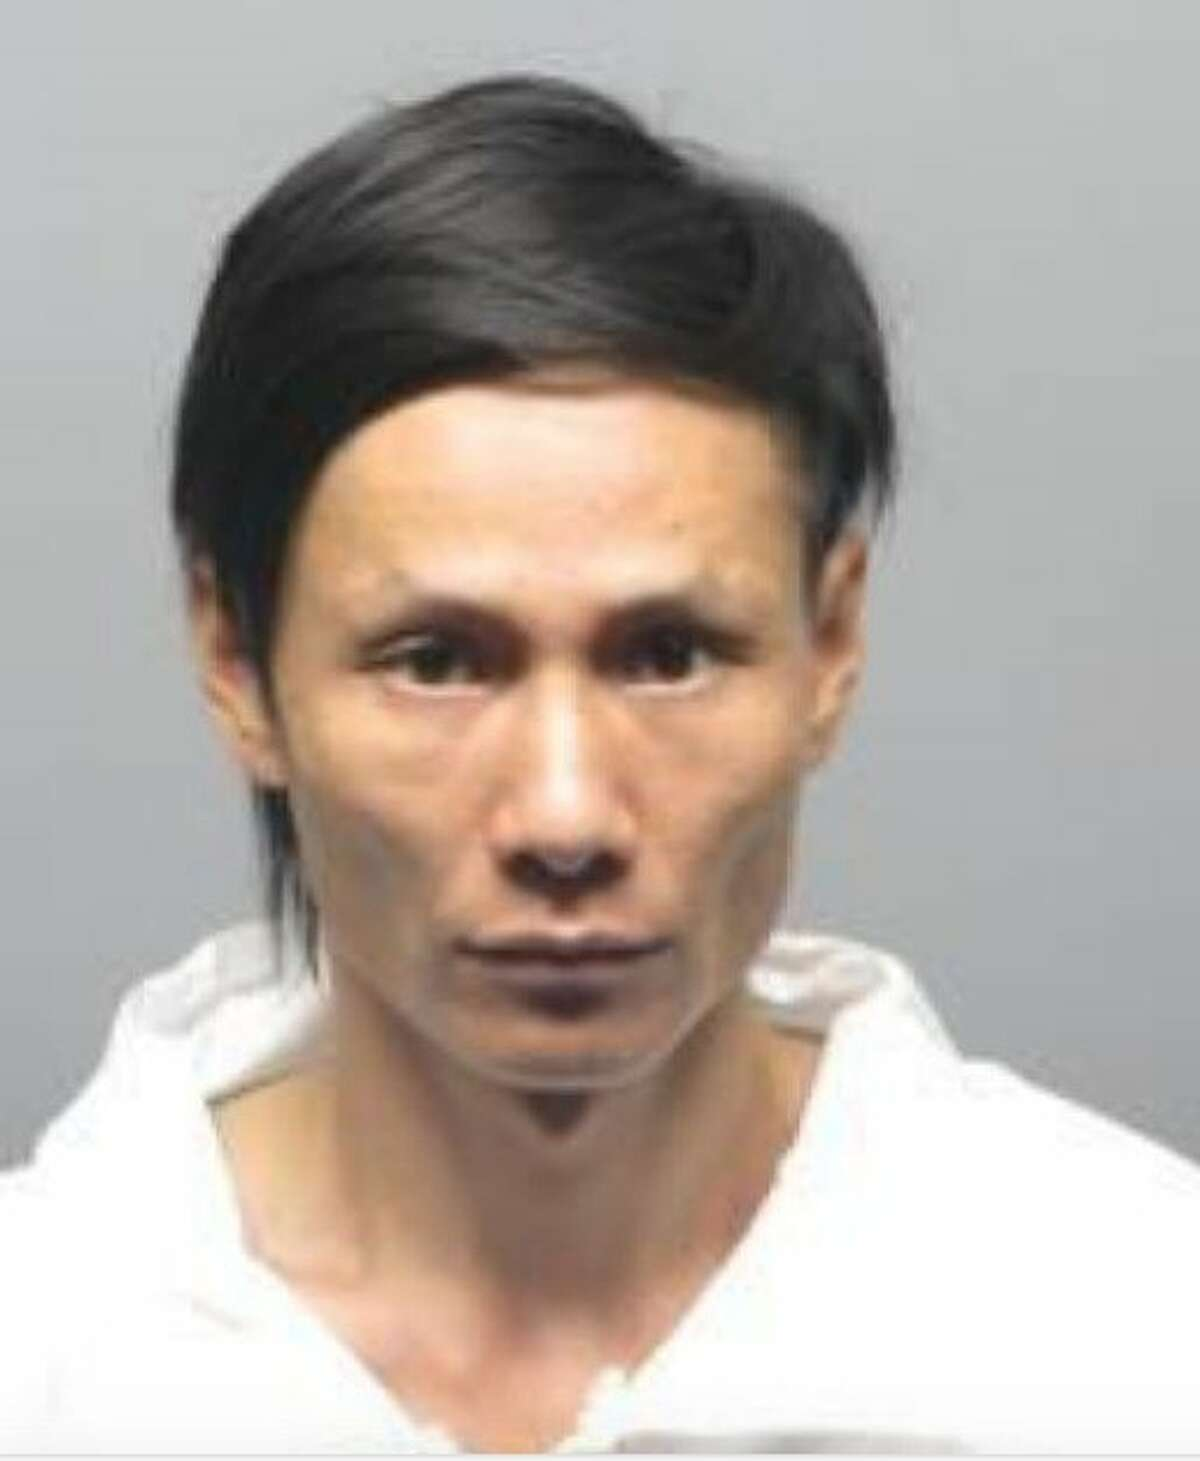 Hang Lin, 32, was arrested on suspicion of murdering a woman he was in a relationship with in an Antioch home, authorities announced Wednesday.